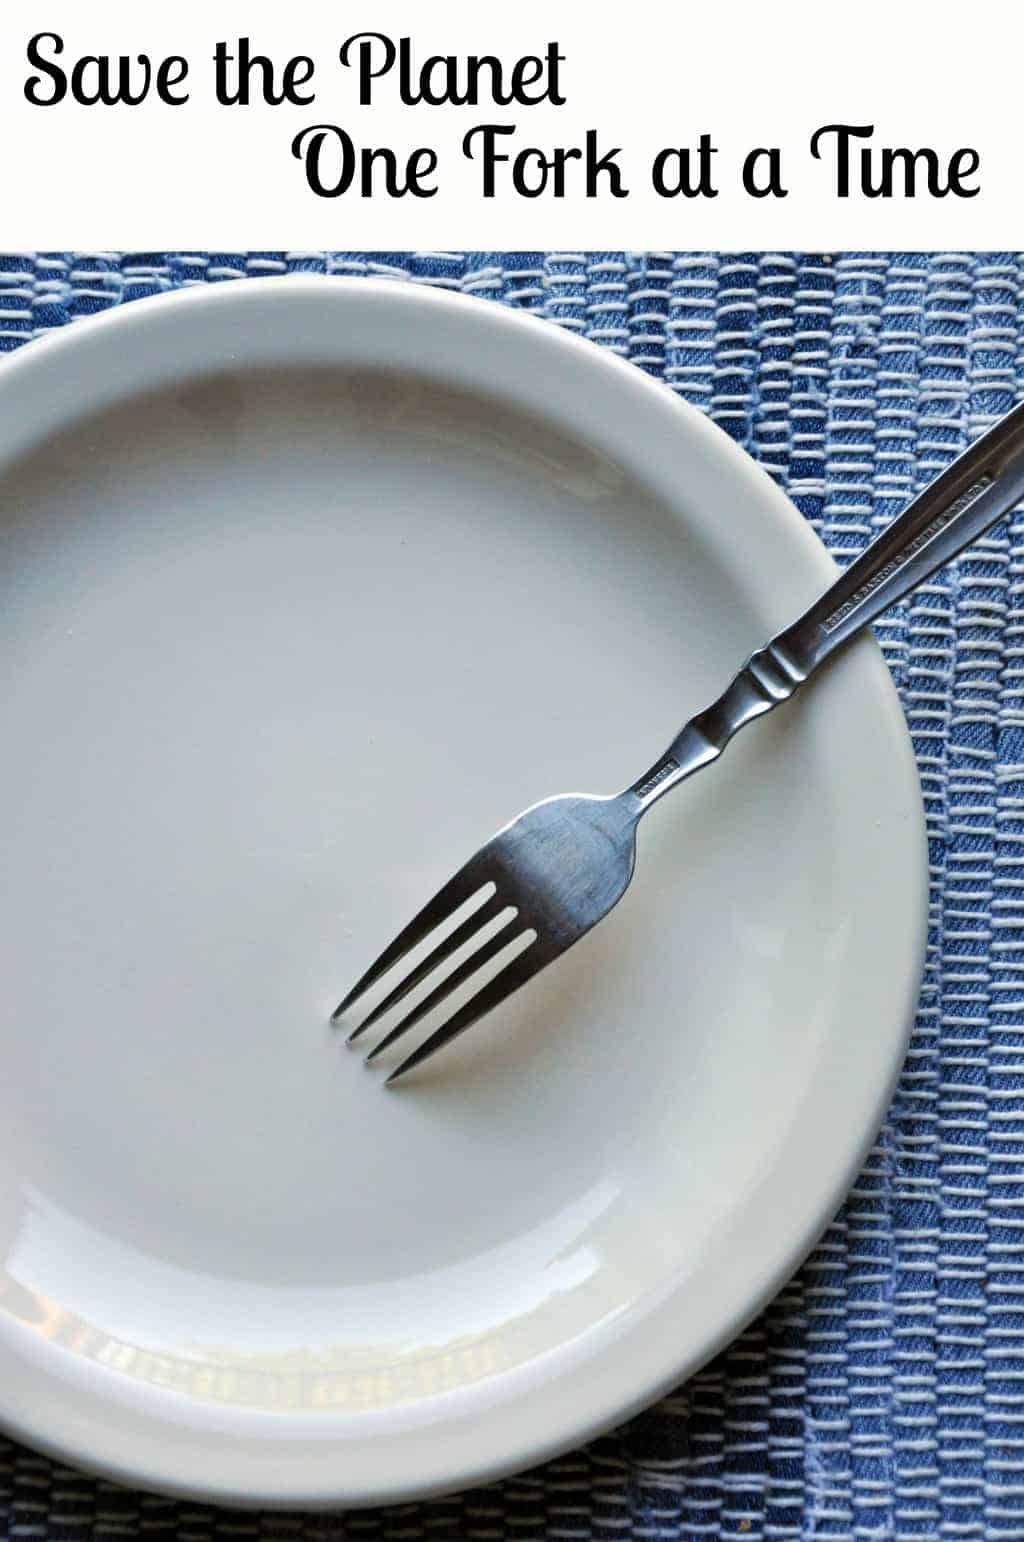 Save Our Planet Earth One Fork at a Time - Turning the Clock Back